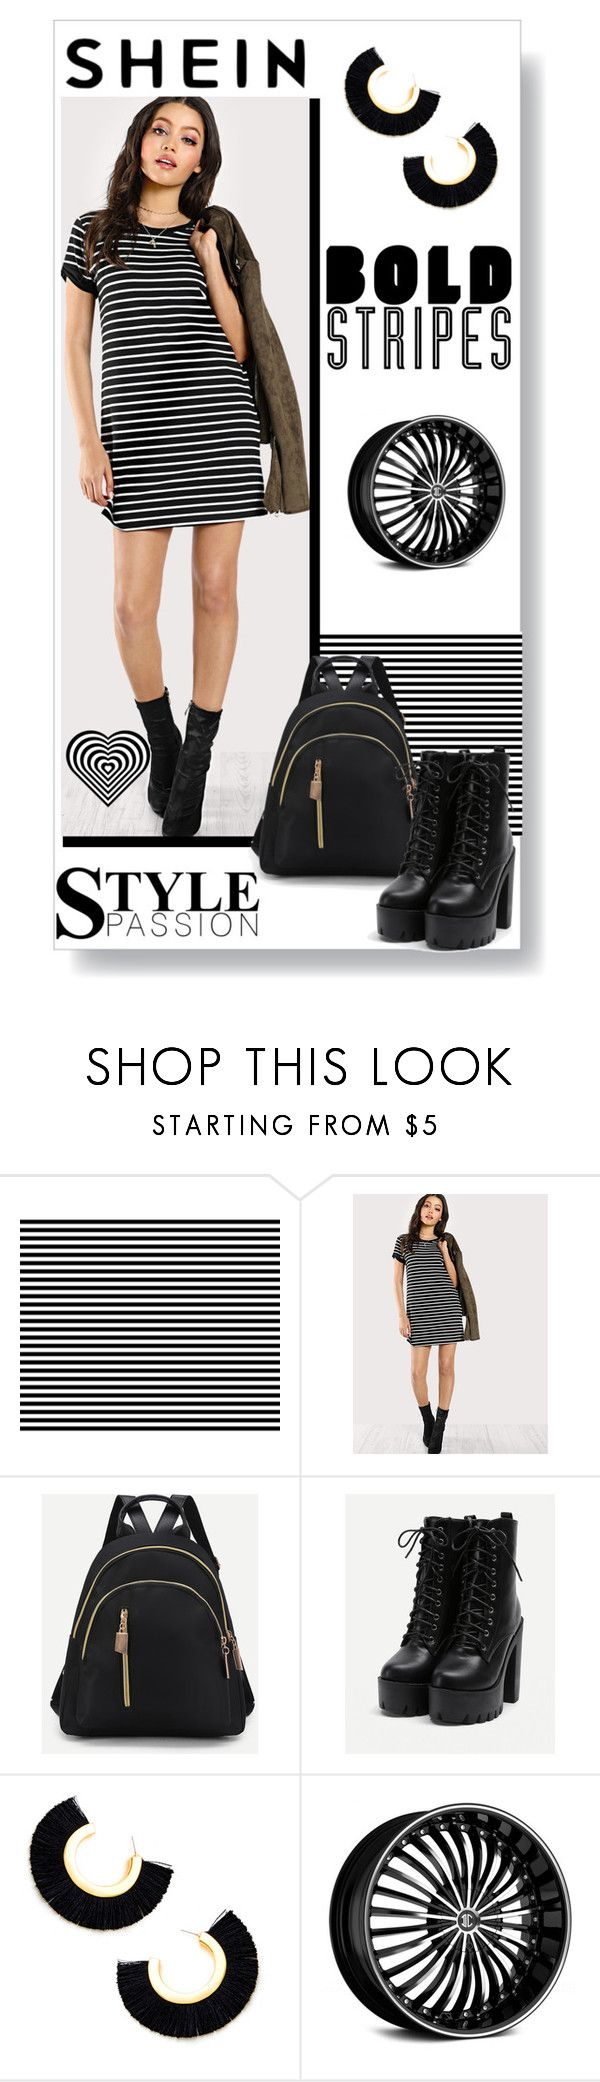 """bold stripes"" by bonnie-wright-1 ❤ liked on Polyvore"